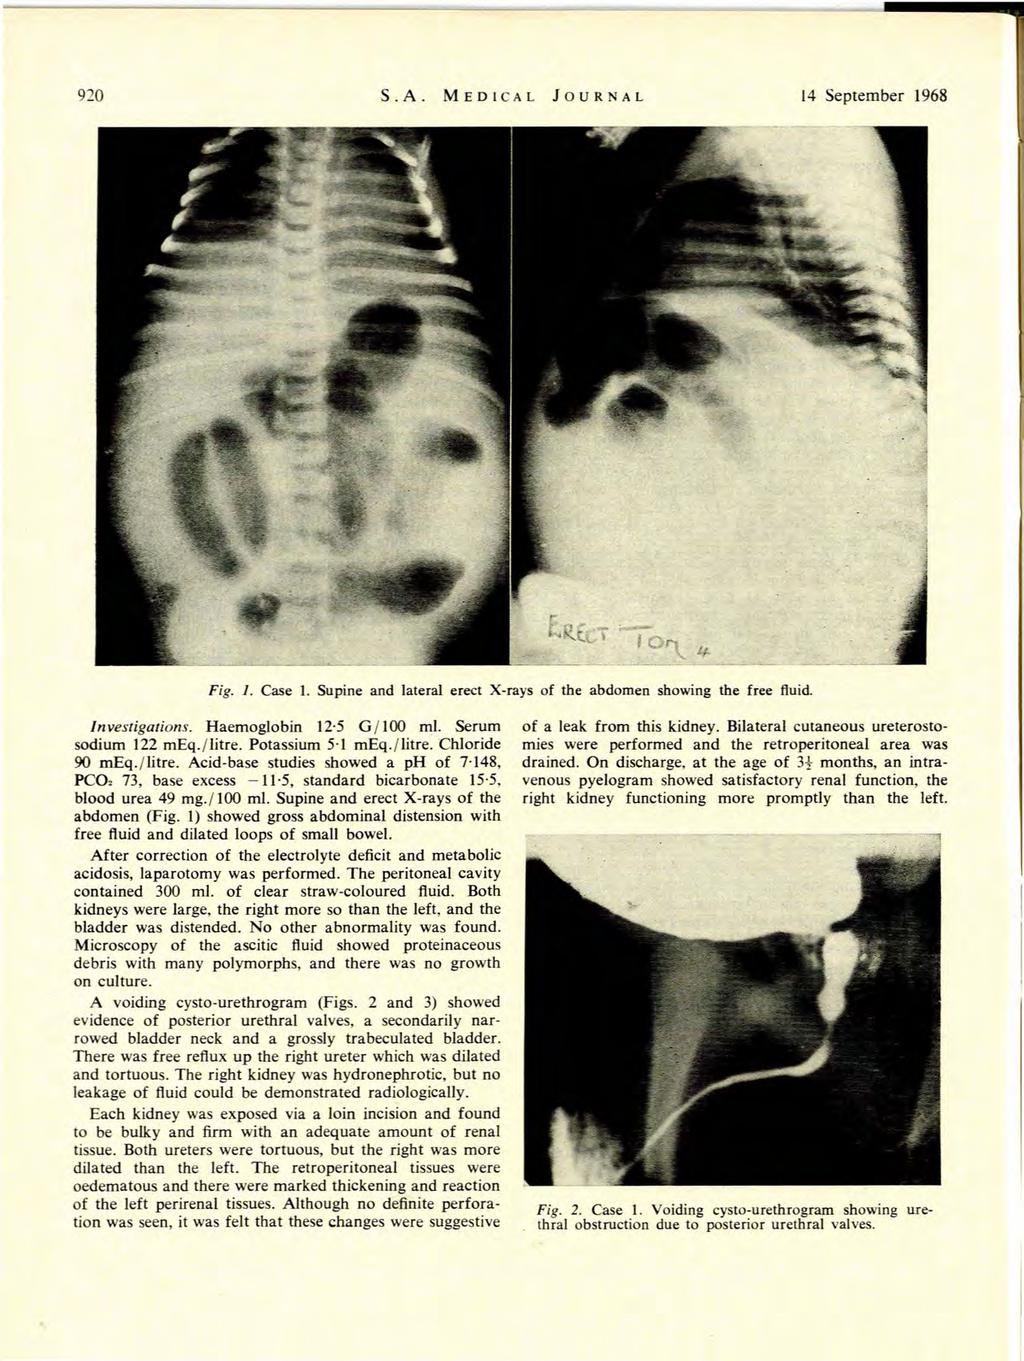 920 S.A. MEDCAL JOURNAL 14 September 1968 Fig. 1. Case 1. Supine and lateral erect X-rays of the abdomen showing the free fluid. nvestigations. Haemoglobin 12 5 G /00 ml. Serum sodium 122 meq./litre.